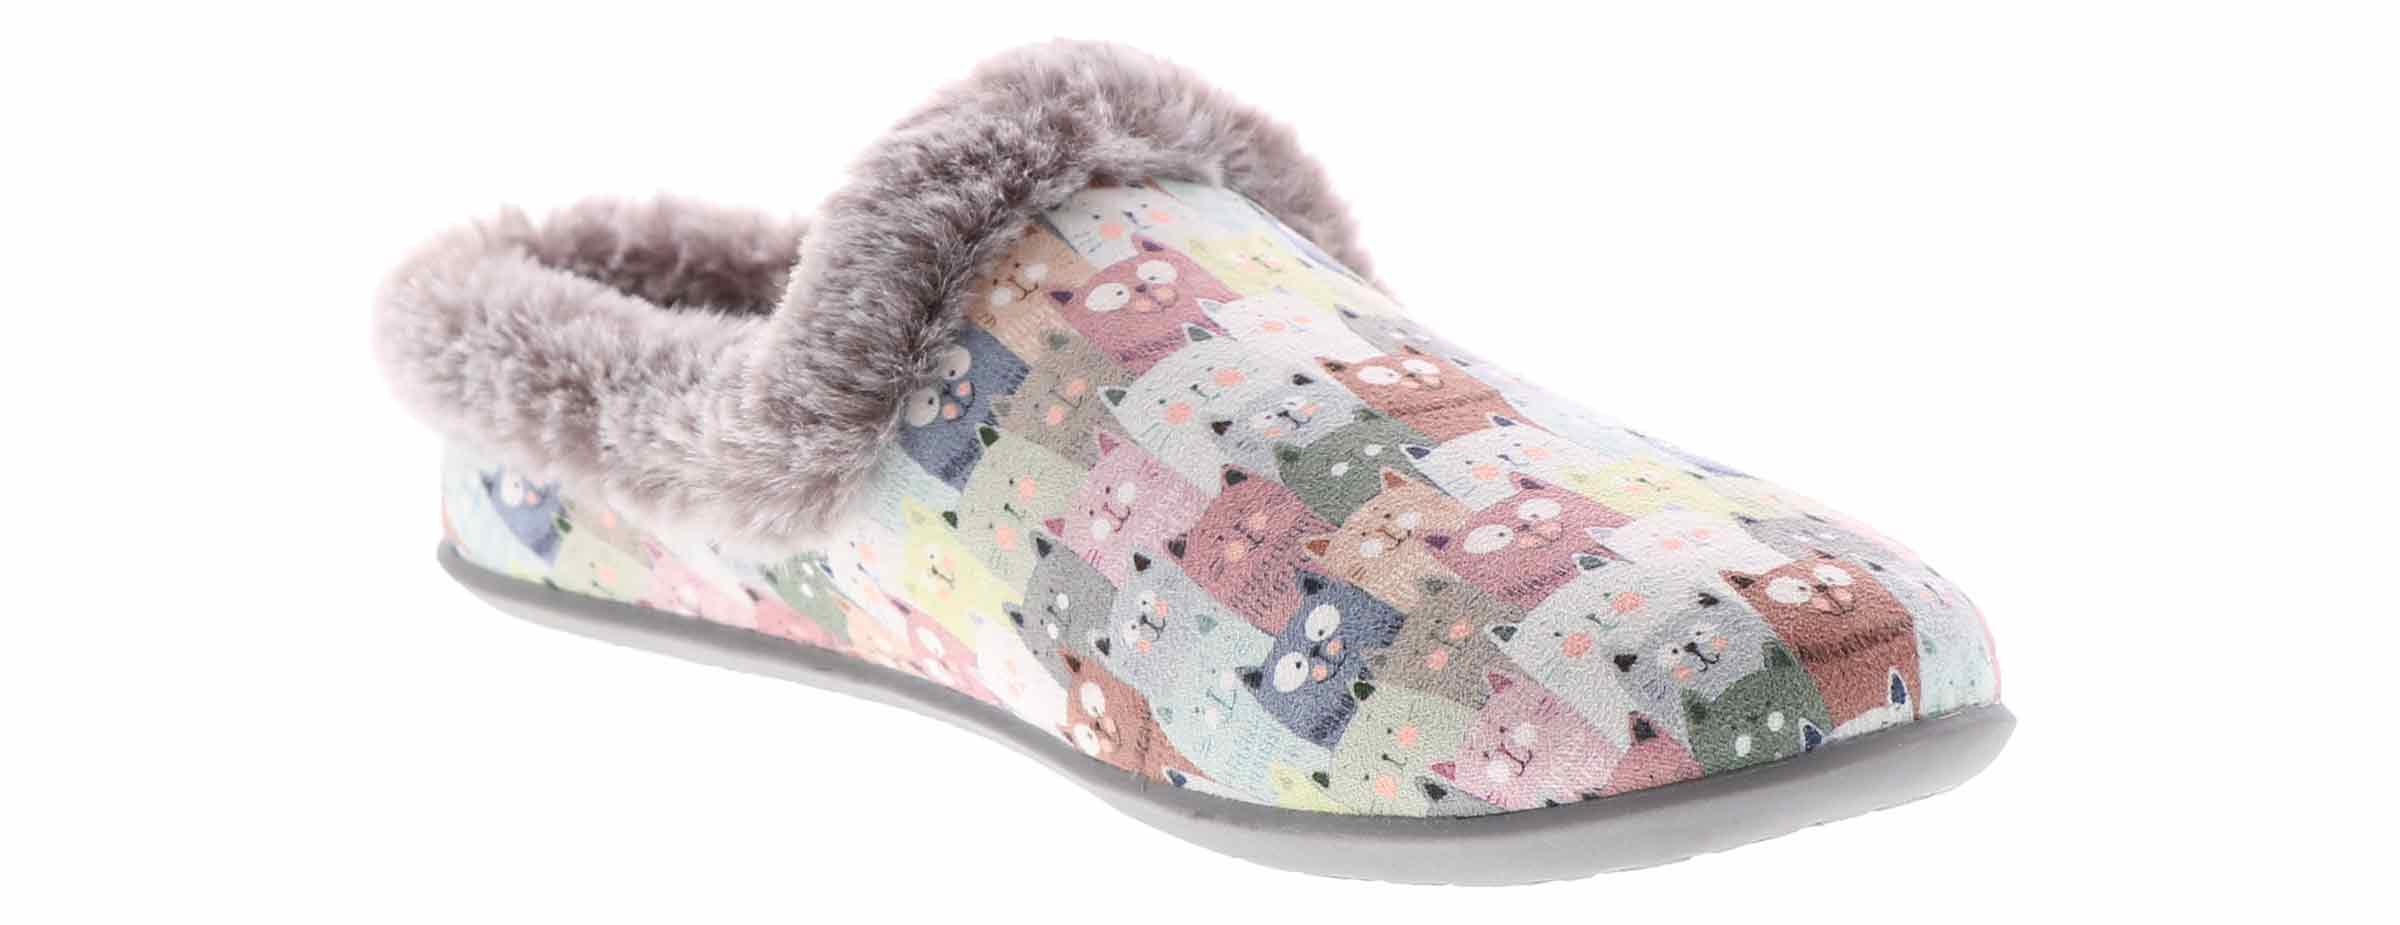 skechers bobs cat sandals Sale,up to 65